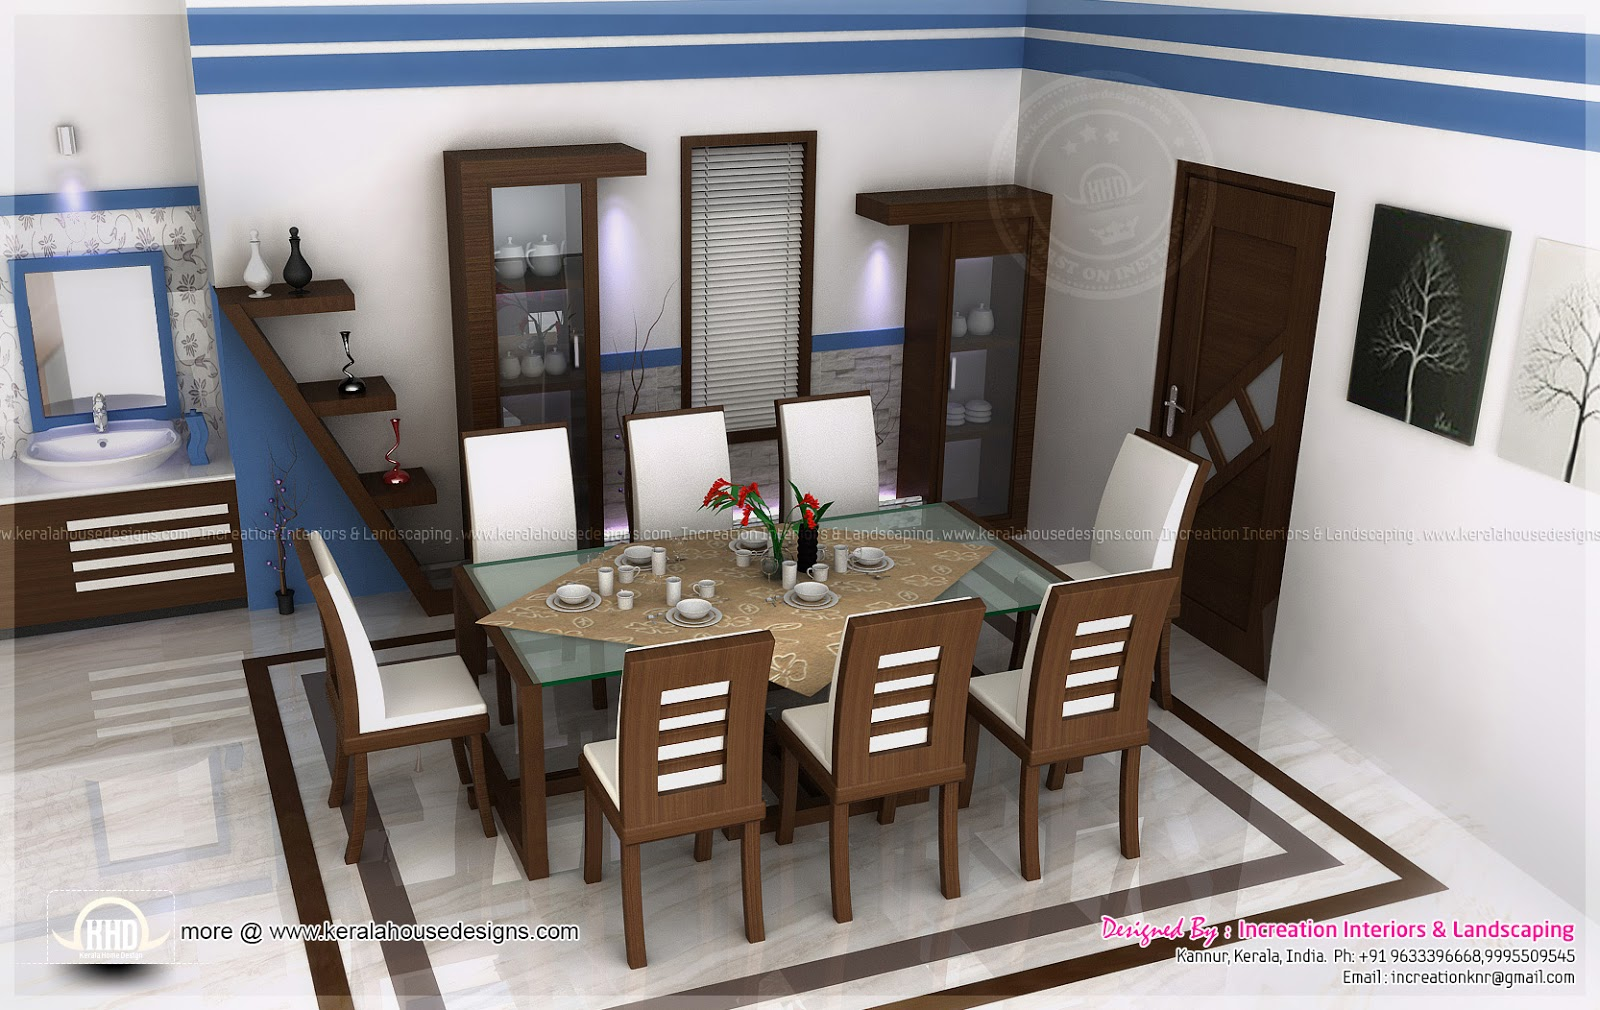 House interior ideas in 3d rendering kerala home design Interior houses